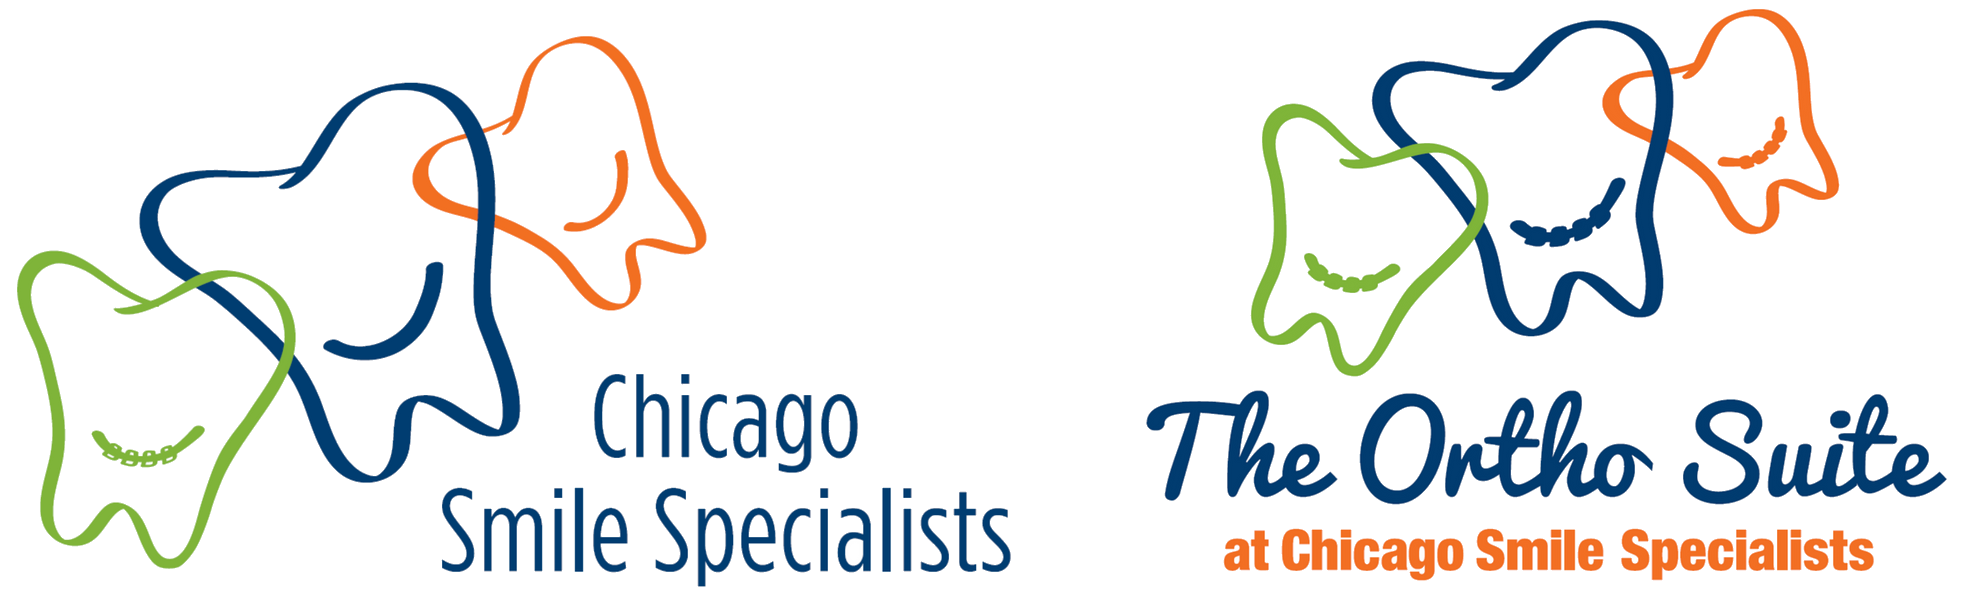 Chicago Smile Specialists - Pediatric Dentistry, Orthodontics